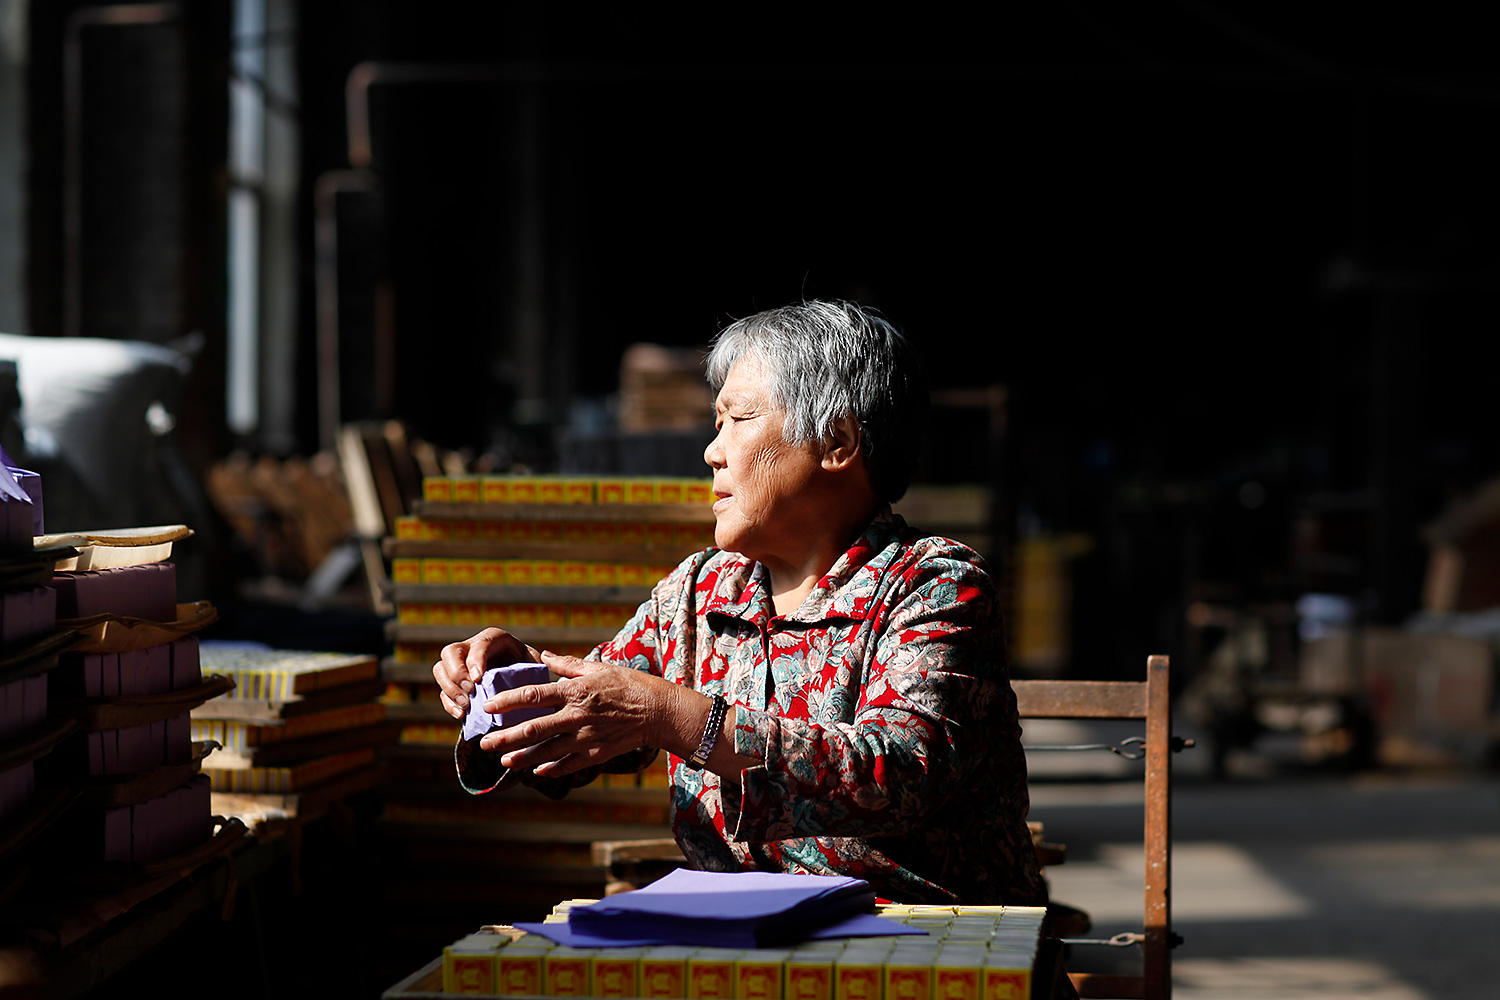 Although he has been officially retired for many years, 72-year-old Sun Guiqin still comes and works as a packer in the factory.